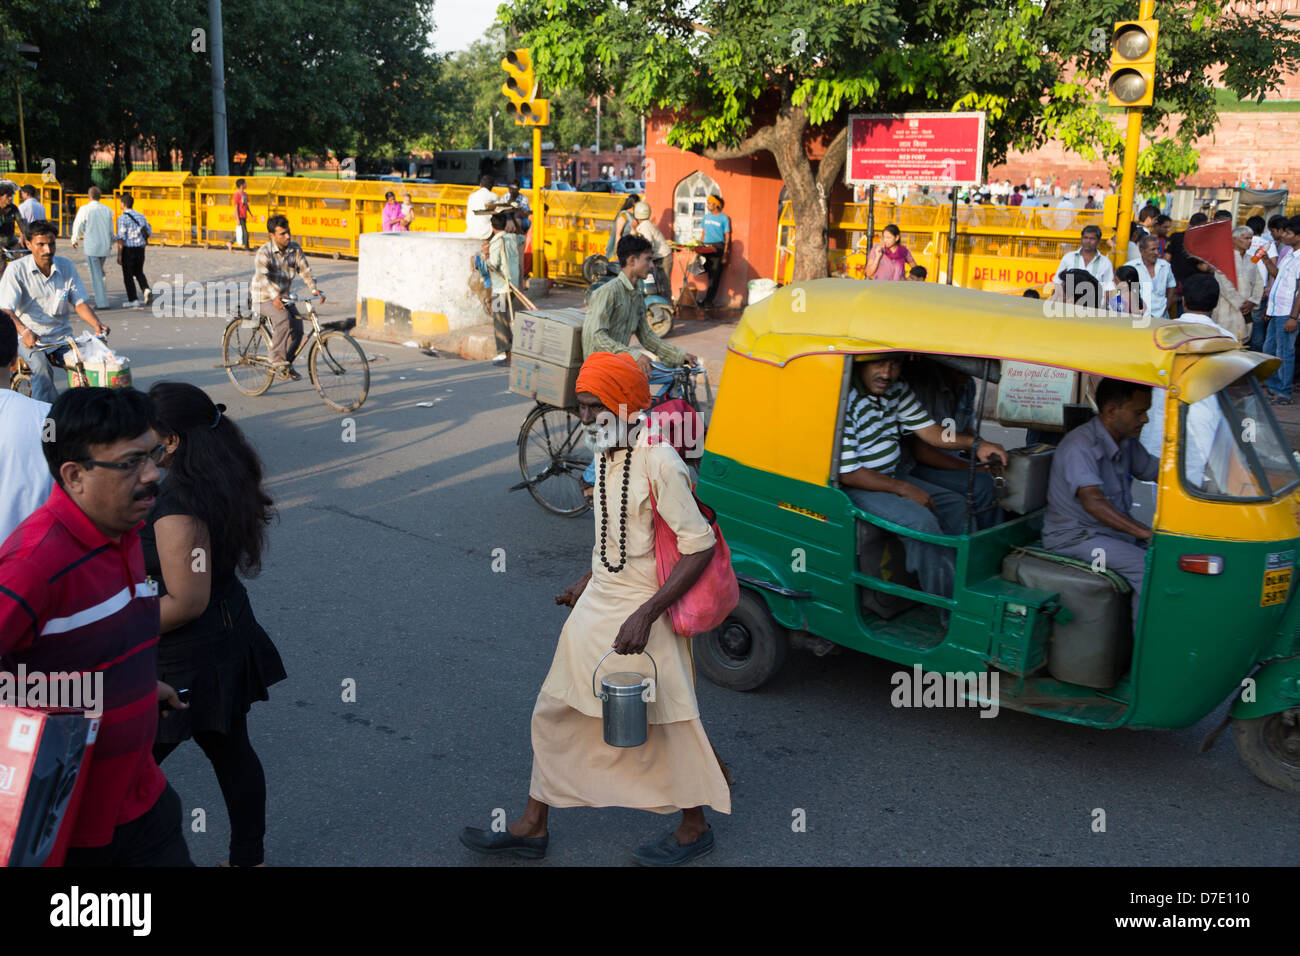 A Indian Sadhu crossing the crowded streets in New Dehli, India - Stock Image